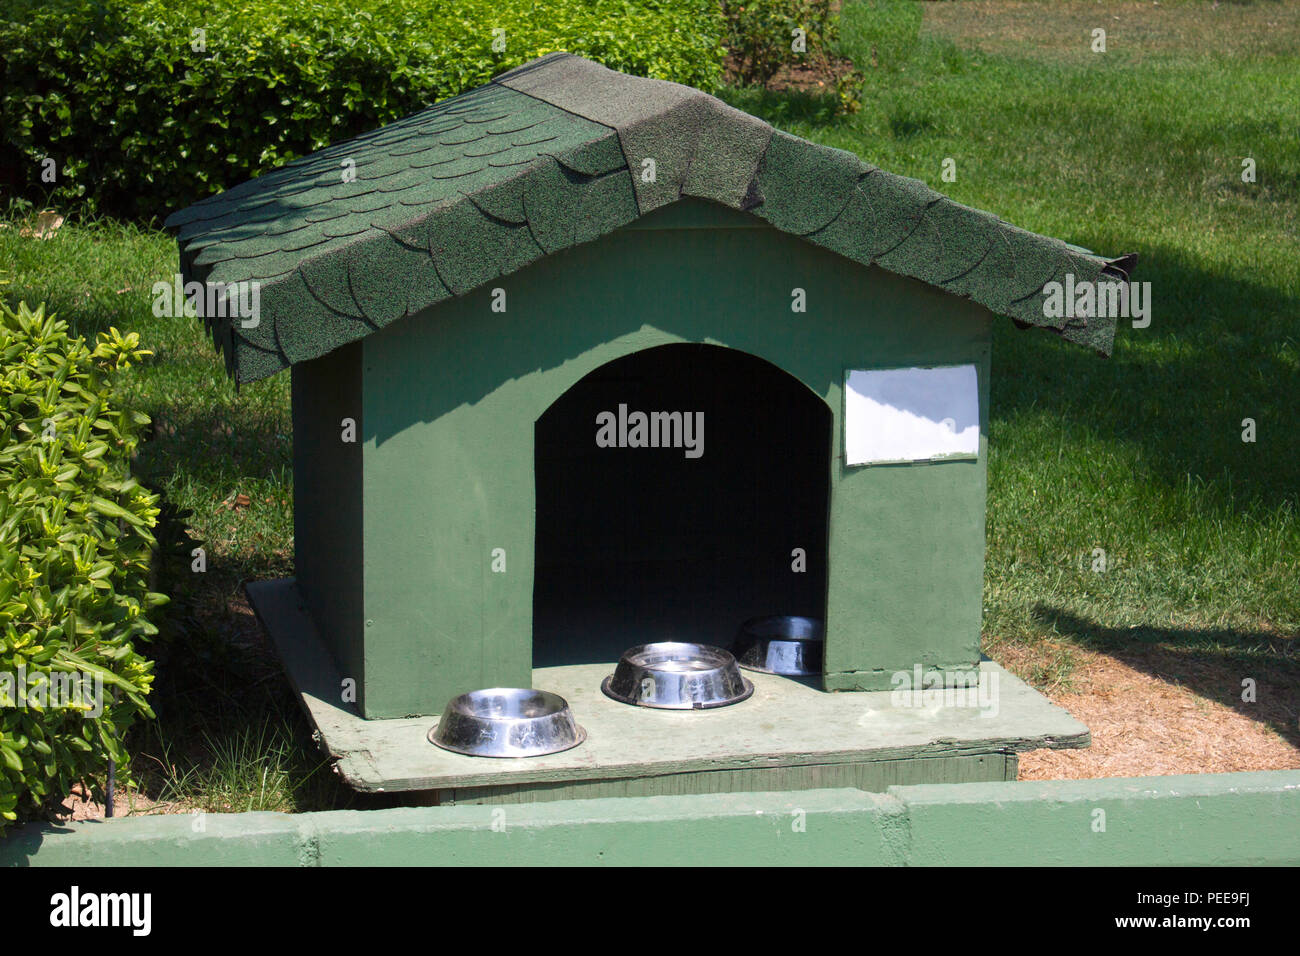 Cottage for cats with bowls for feed on a green lawn - Stock Image